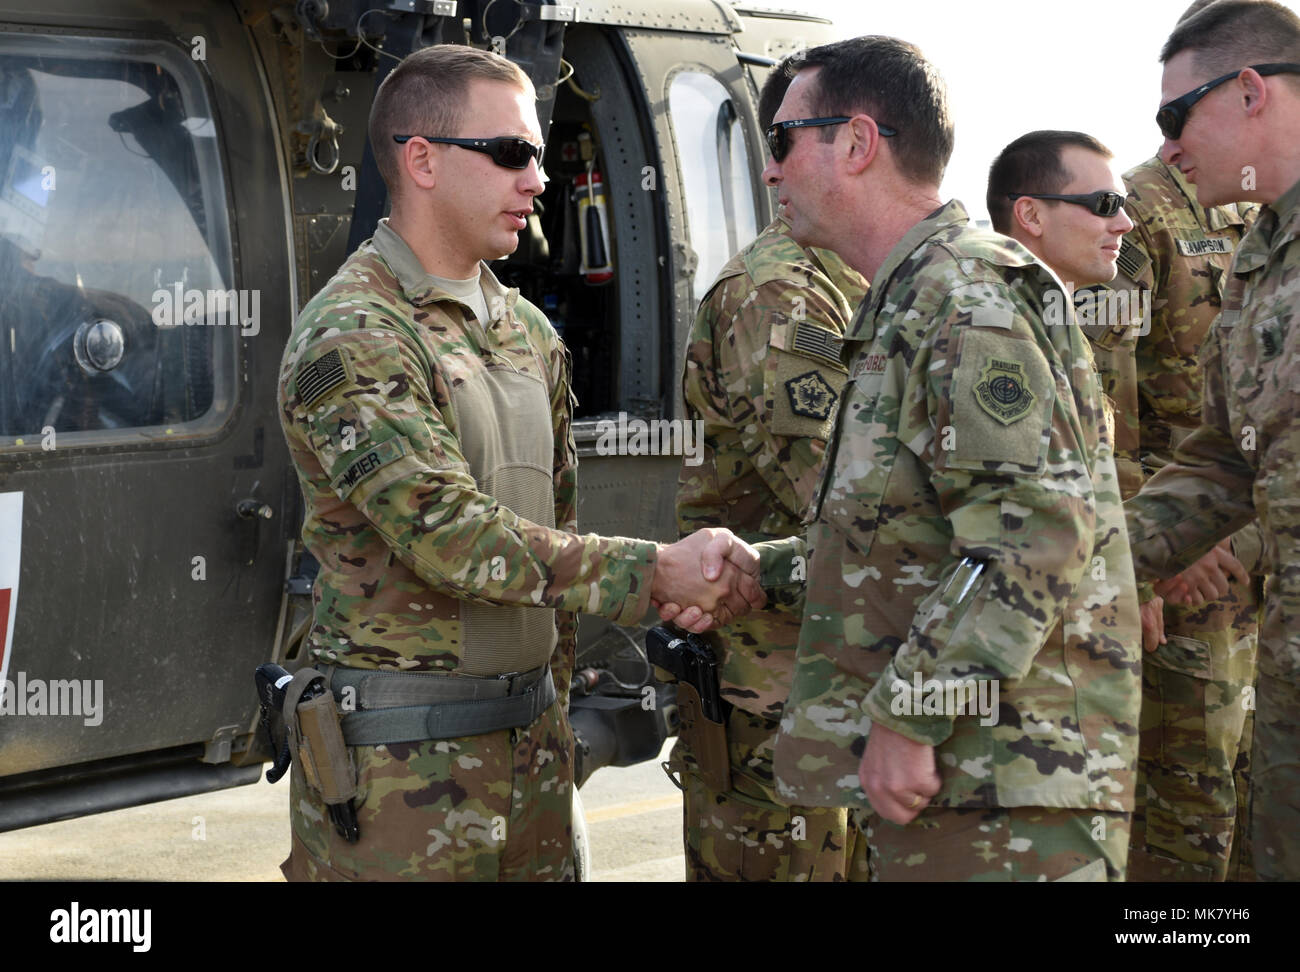 U.S. Army Soldiers with Task Force Marauder were presented with coins from U.S. Air Force Gen. Joseph Lengyel, Chief, National Guard Bureau, Nov. 23, 2017 in Afghanistan for their recent actions in response to a mass casualty involving U.S. Soldiers. Lengyel recognized Soldiers with Detachment 1, C Company, Medical Evacuation, 2-211th General Support Aviation Battalion (GSAB) with the Iowa National Guard and C Company, 4-3 Assault Helicopter Battalion (AHB), 3rd Combat Aviation Brigade, who responded to a vehicle borne improvised explosive device strike against an American convoy Nov. 13, 2017 Stock Photo